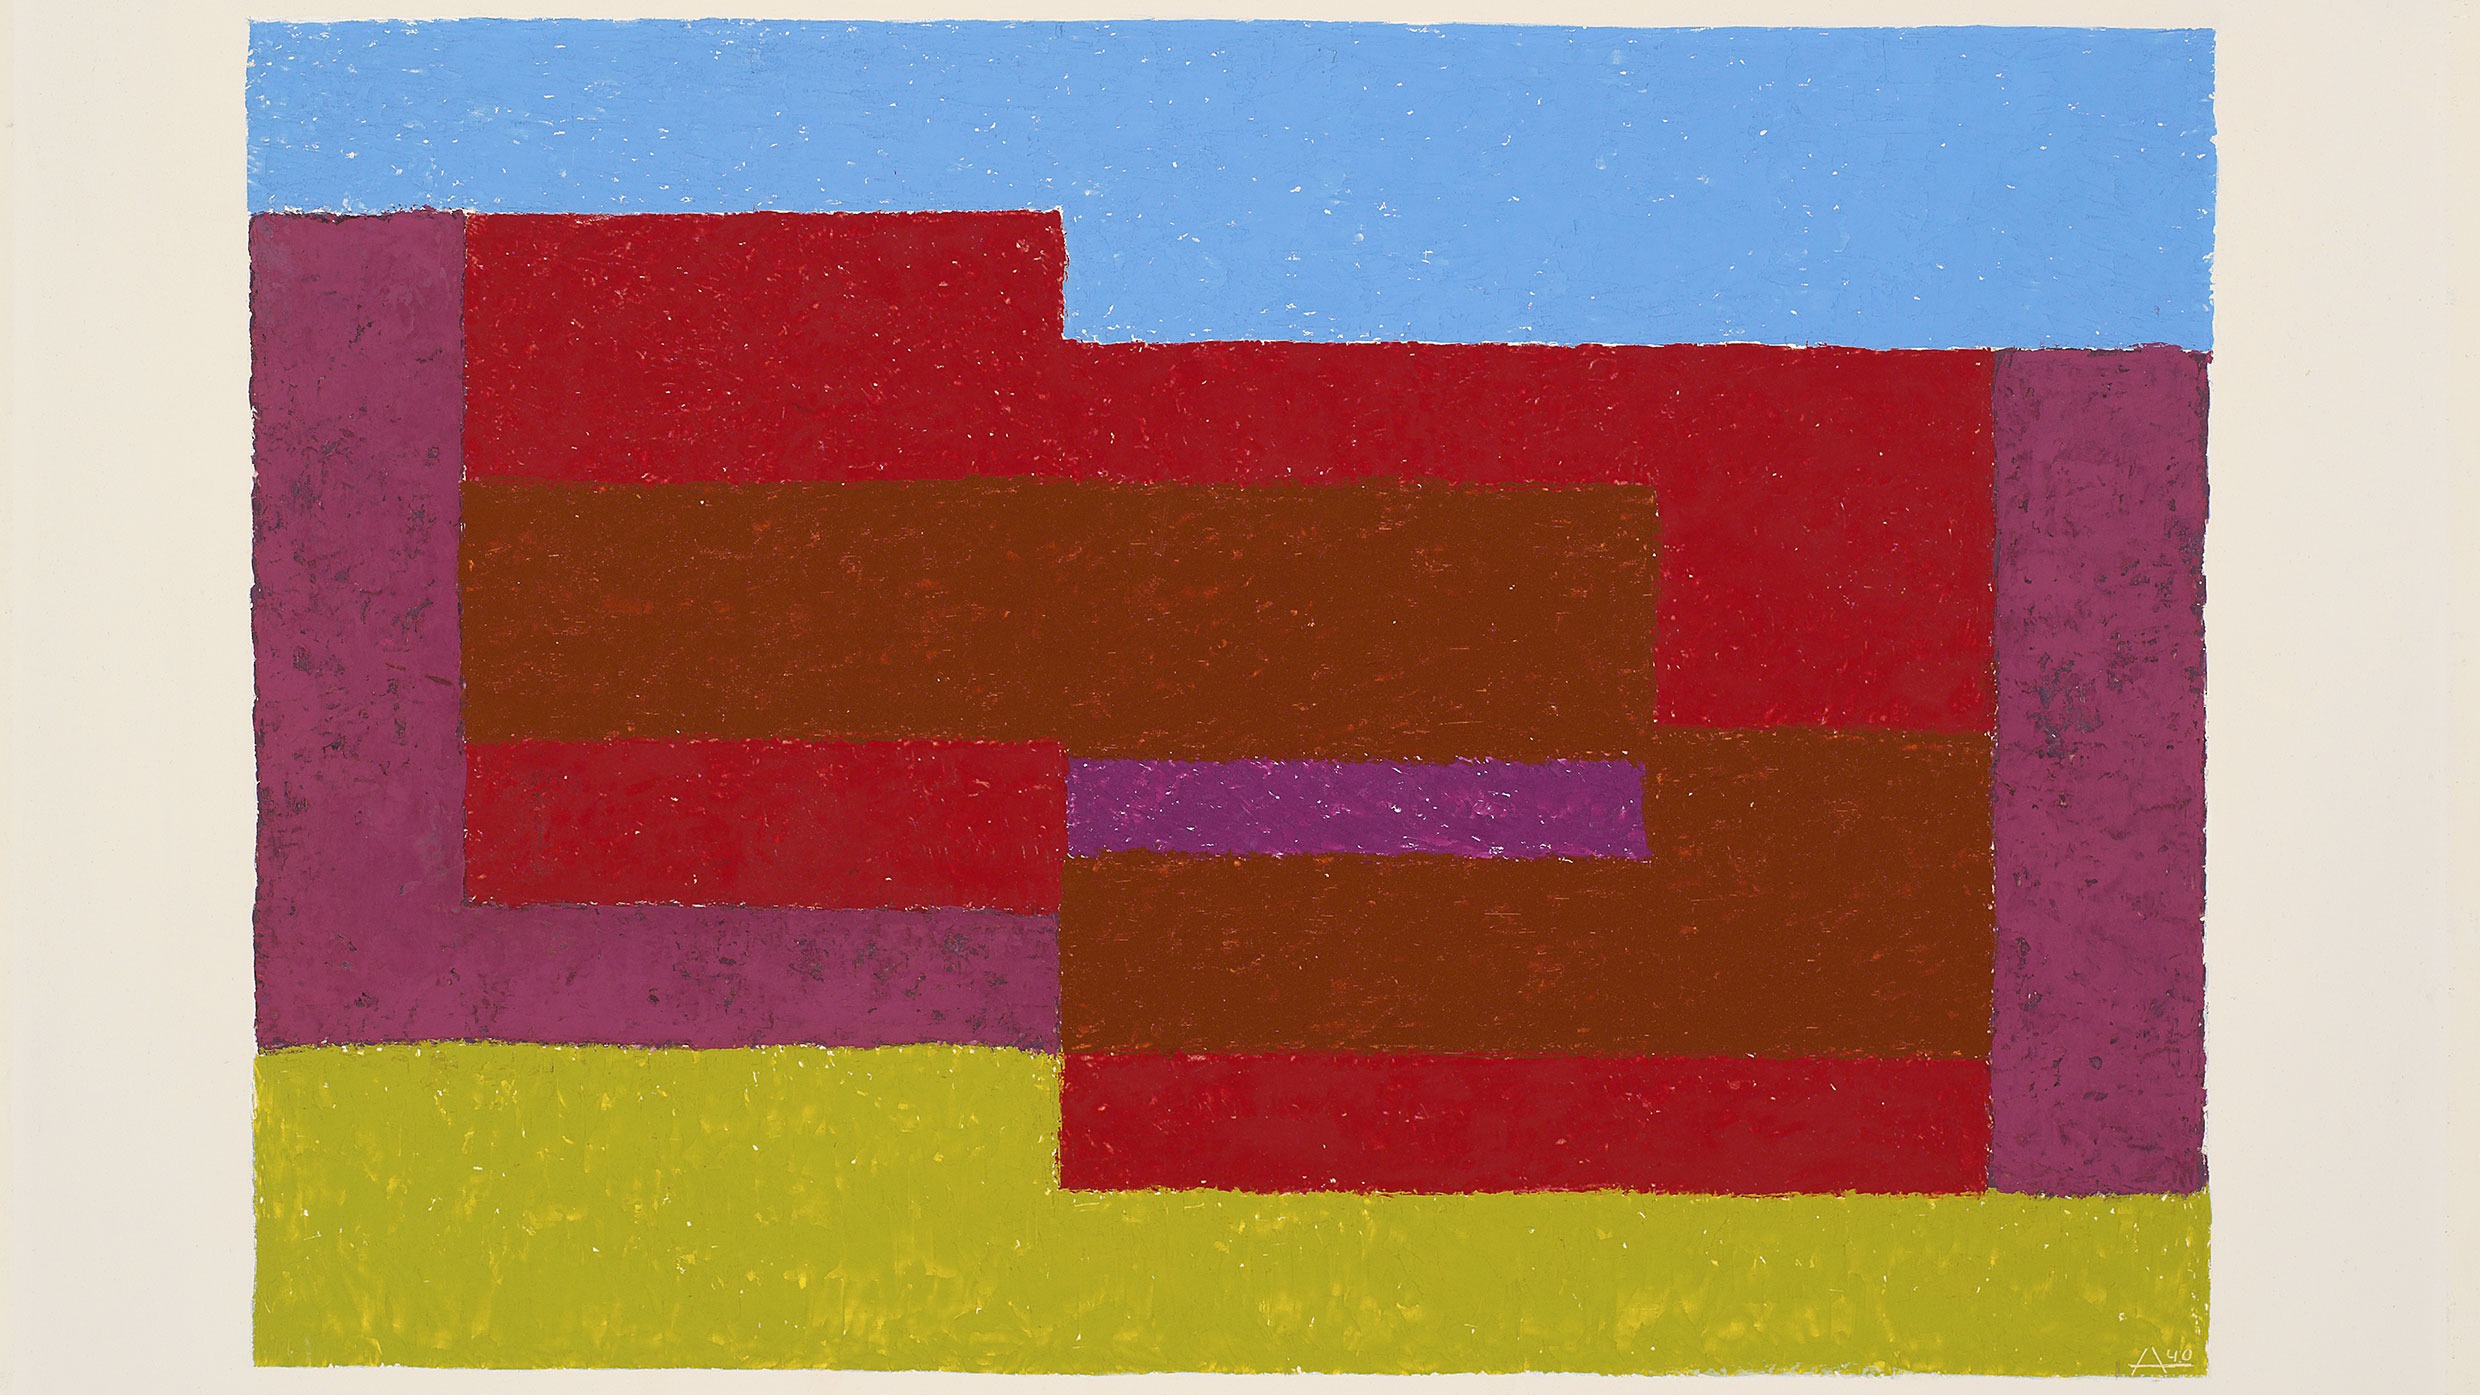 Detail: Josef Albers, To Mitla, 1940. Oil on Masonite, 53.3 × 71.1 cm. The Josef and Anni Albers Foundation © 2017 The Josef and Anni Albers Foundation/Artists Rights Society (ARS), New York. Photo: Courtesy The Josef and Anni Albers Foundation